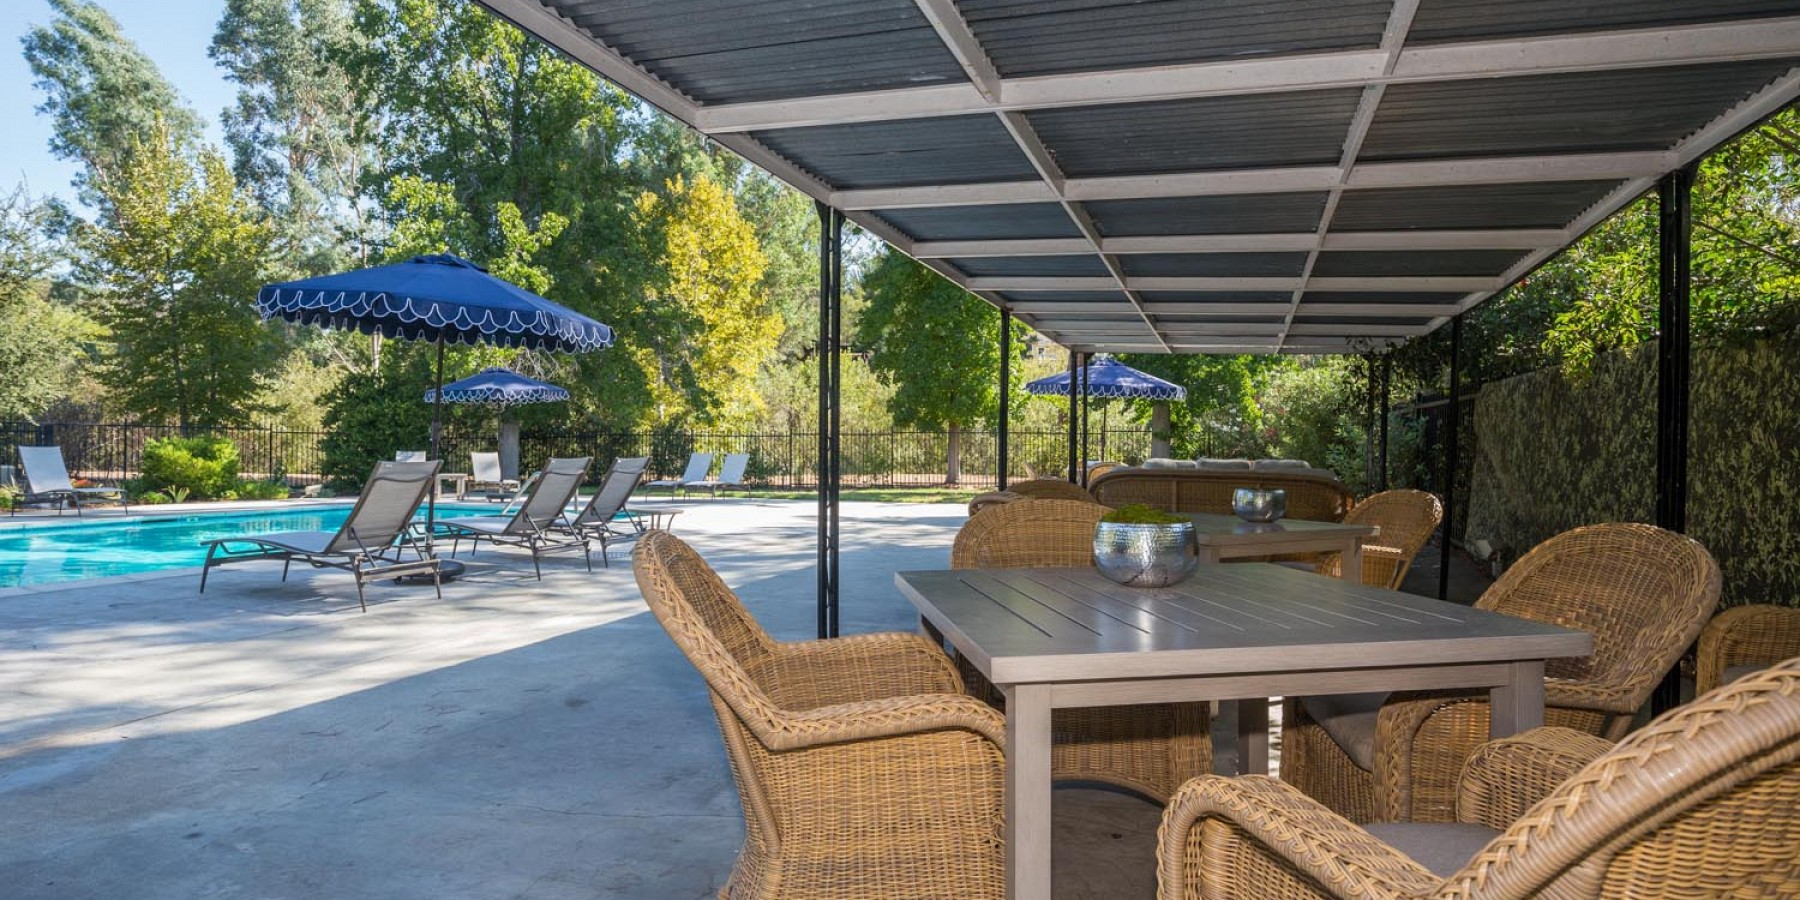 29085 Lake Vista, Agoura, CA 91301